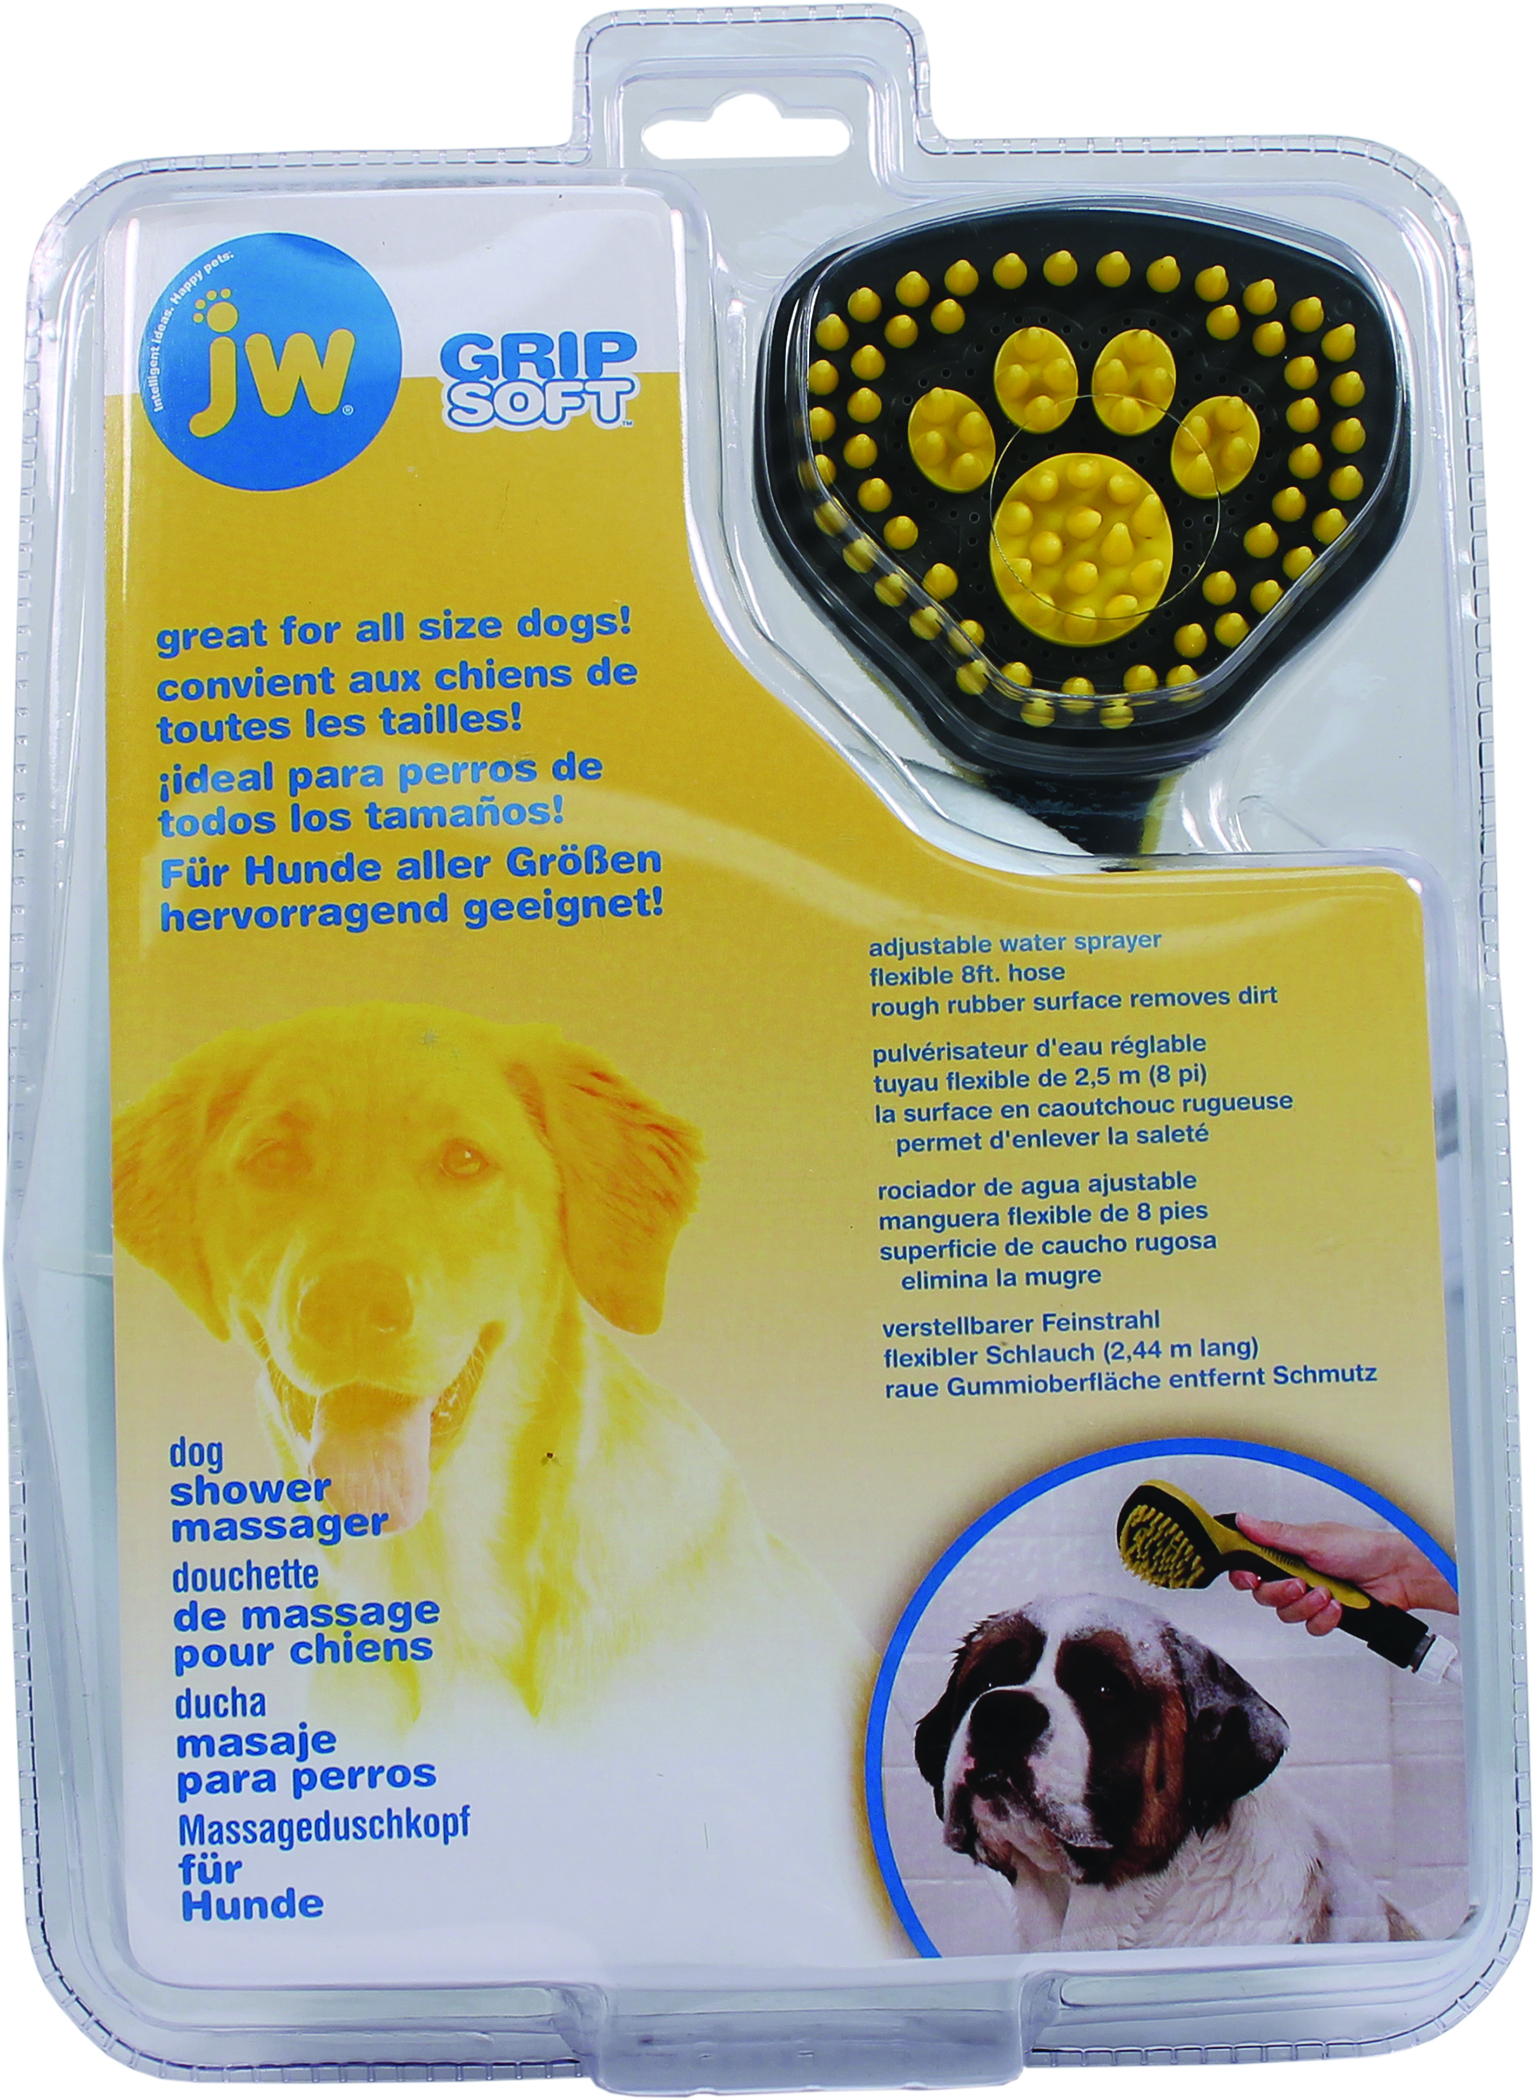 JW Grip Soft Pet Shower Massager